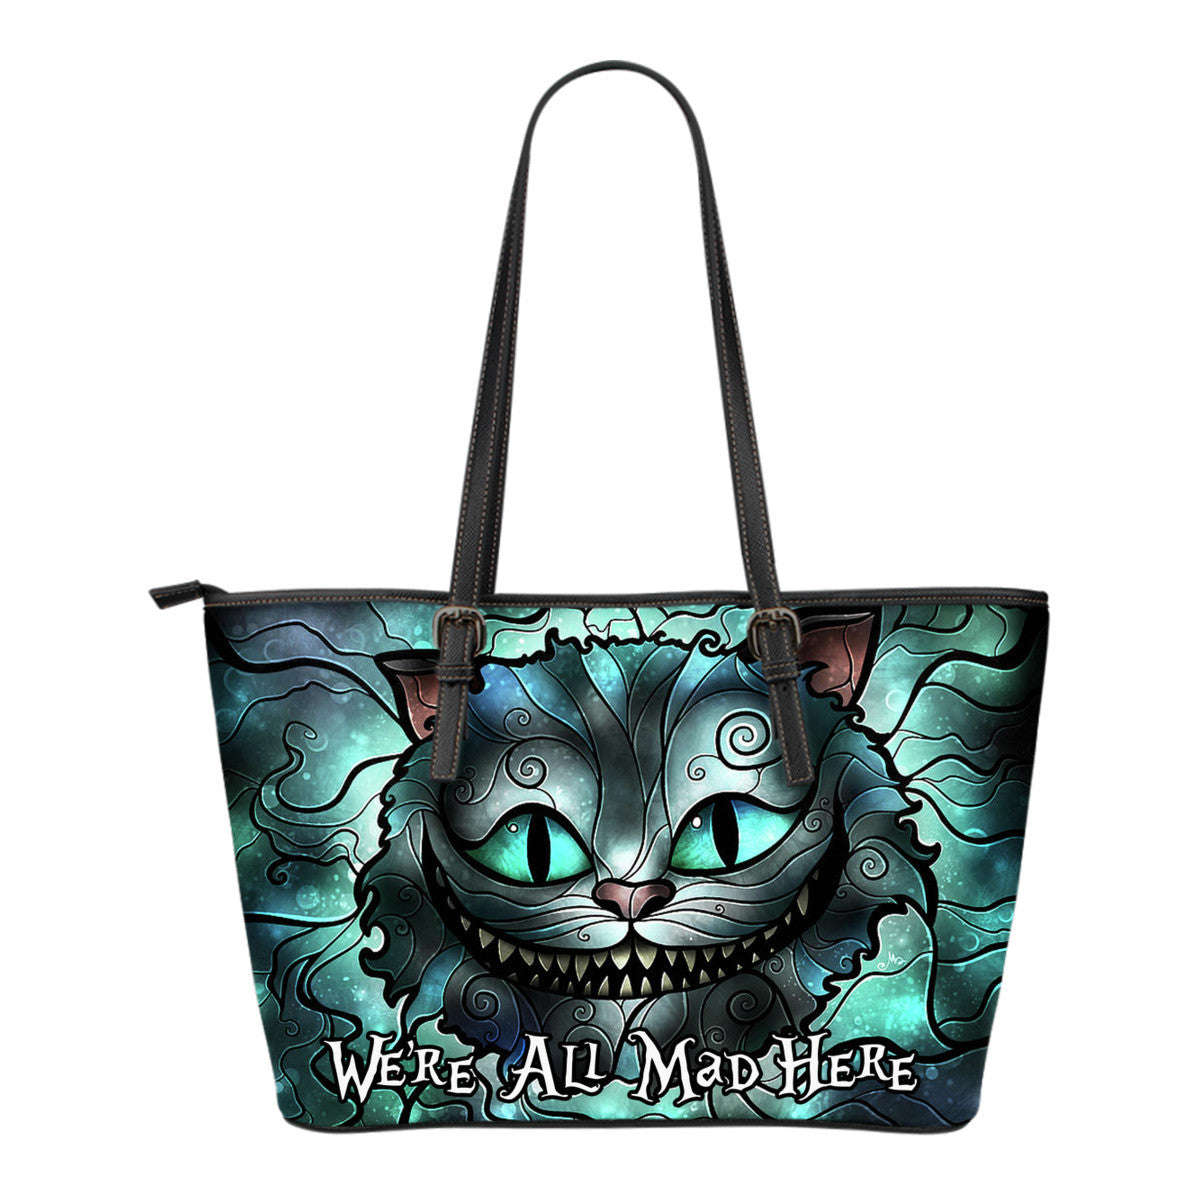 Were all mad here tote bag luvlavie